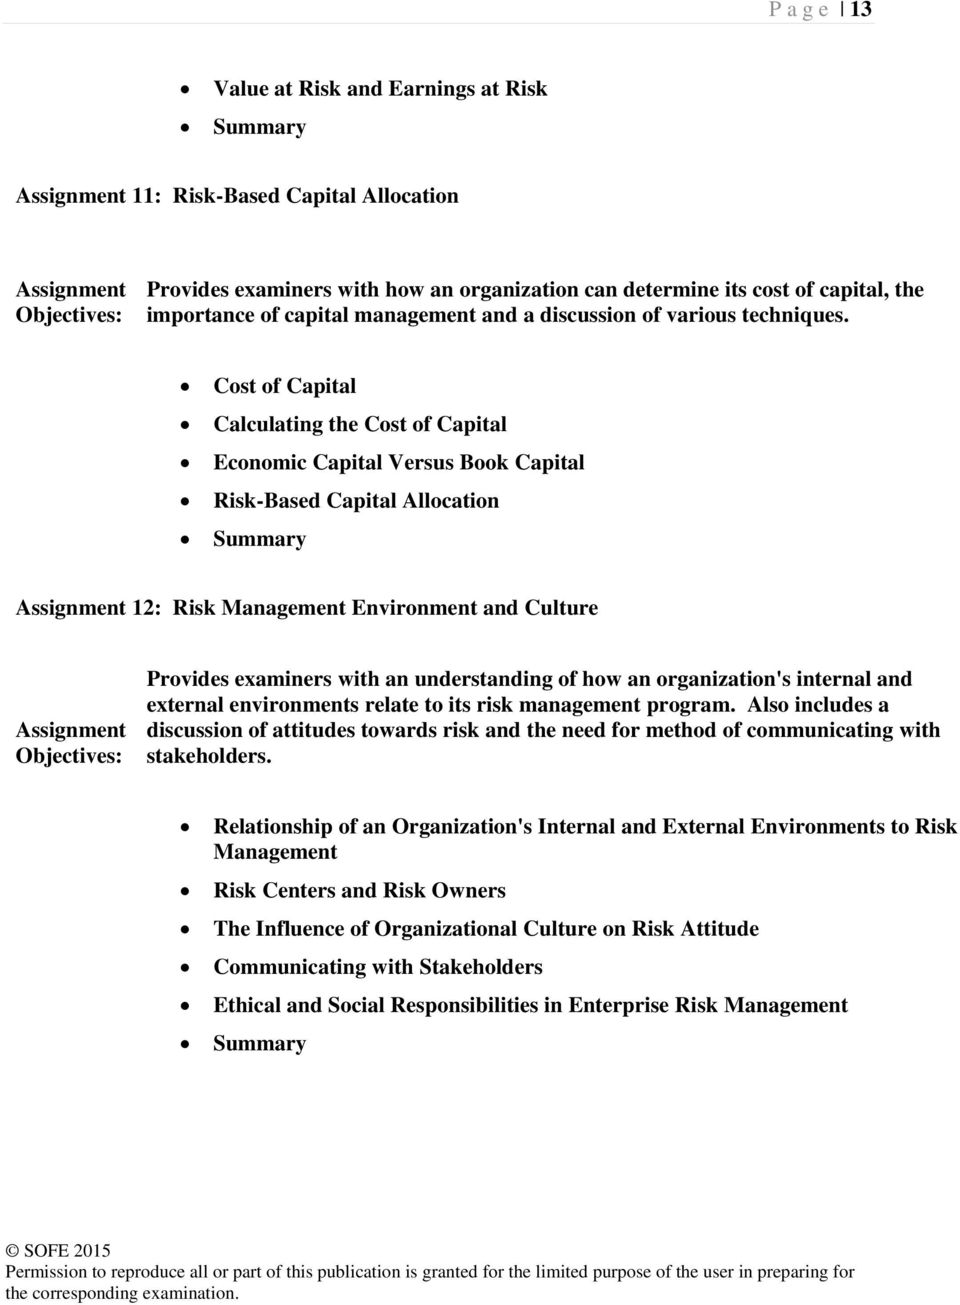 Cost of Capital Calculating the Cost of Capital Economic Capital Versus Book Capital Risk-Based Capital Allocation 12: Risk Management Environment and Culture Provides examiners with an understanding